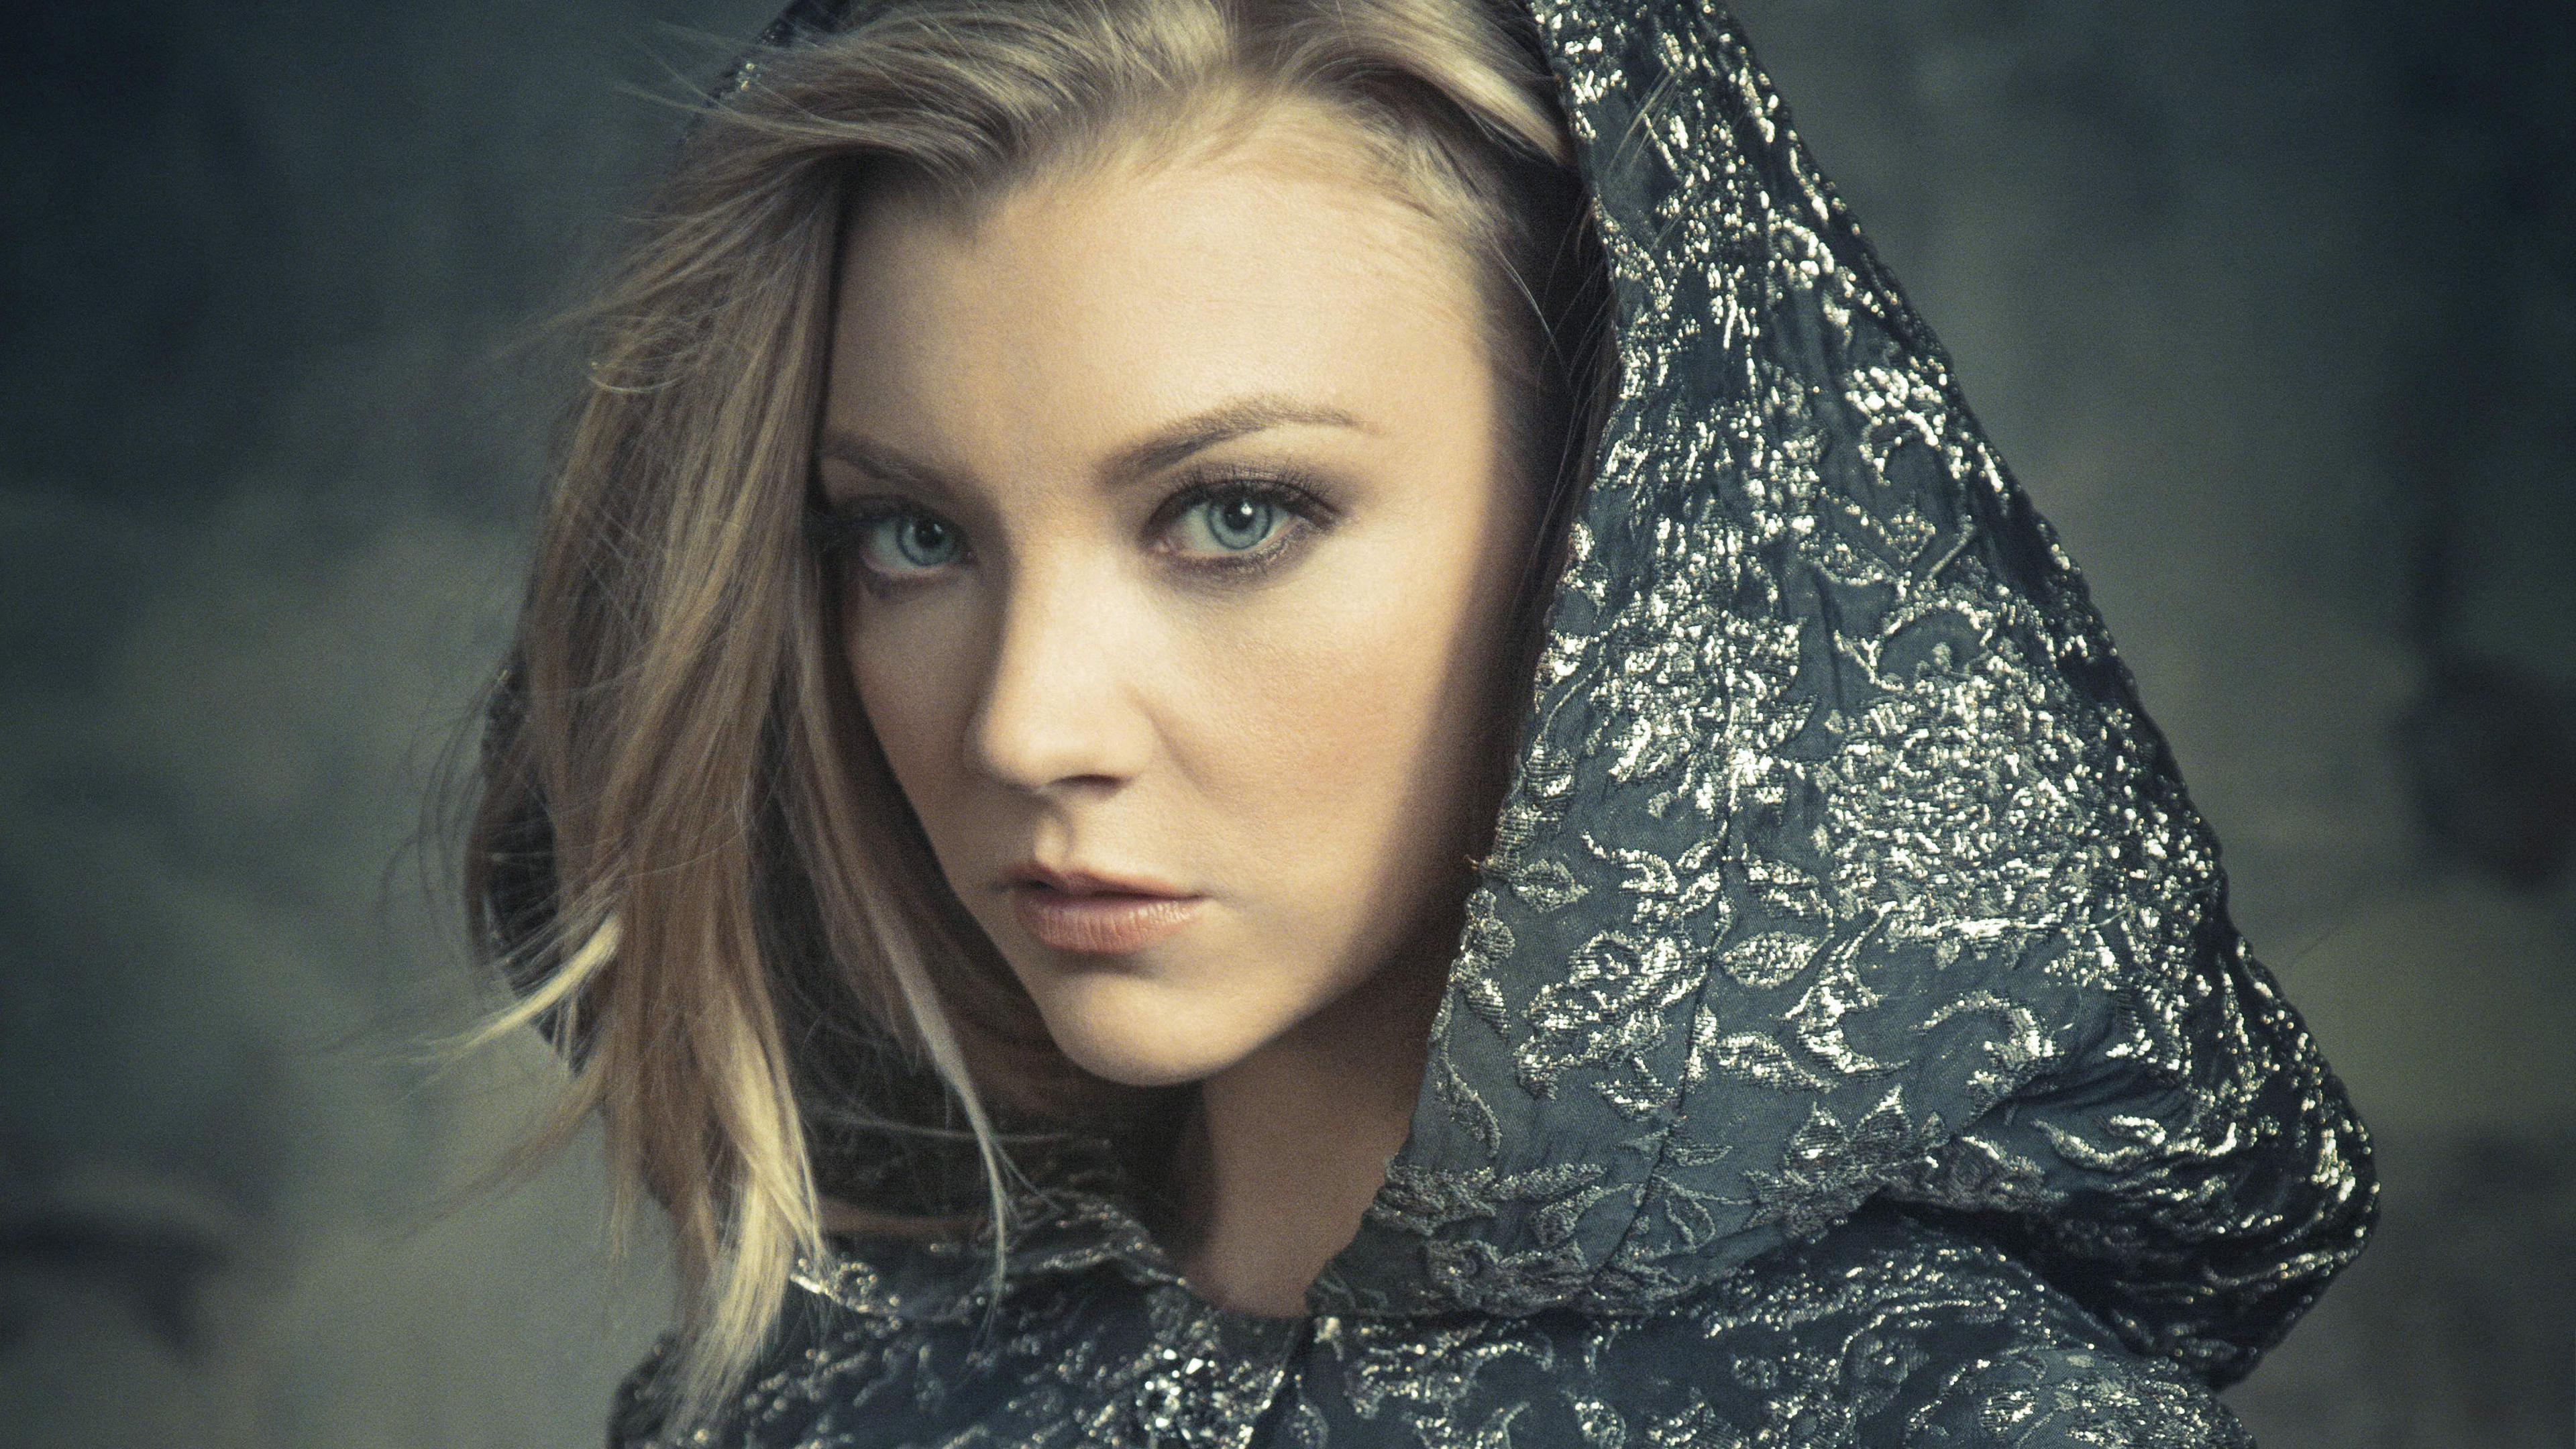 natalie dormer 4k new 1542824617 - Natalie Dormer 4k New - natalie dormer wallpapers, hd-wallpapers, girls wallpapers, celebrities wallpapers, 4k-wallpapers